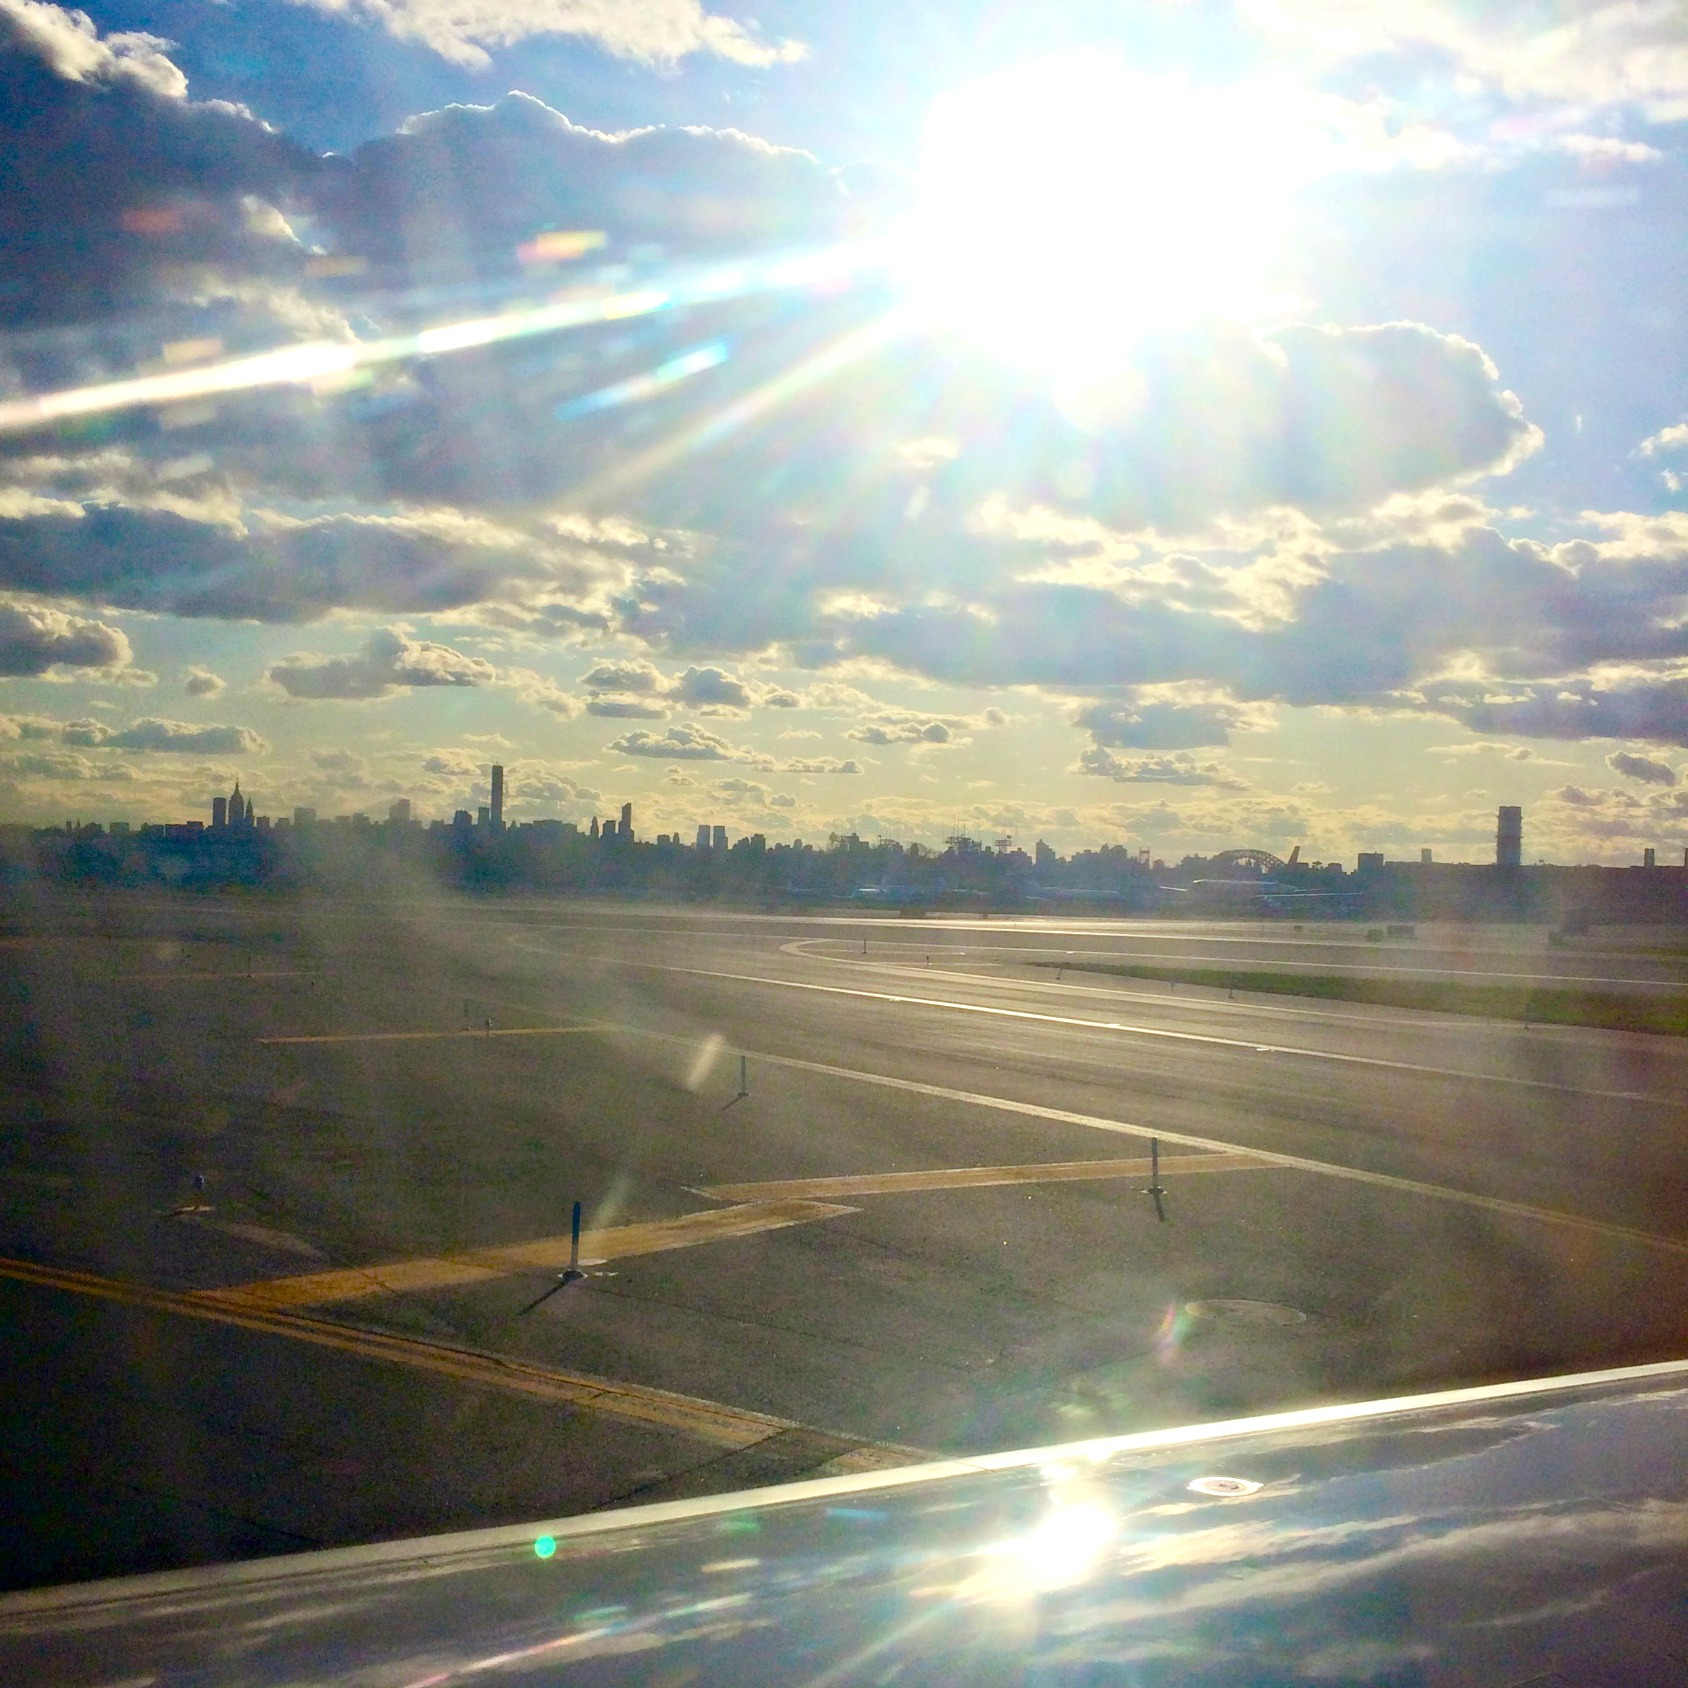 leaving NYC skyline from plane